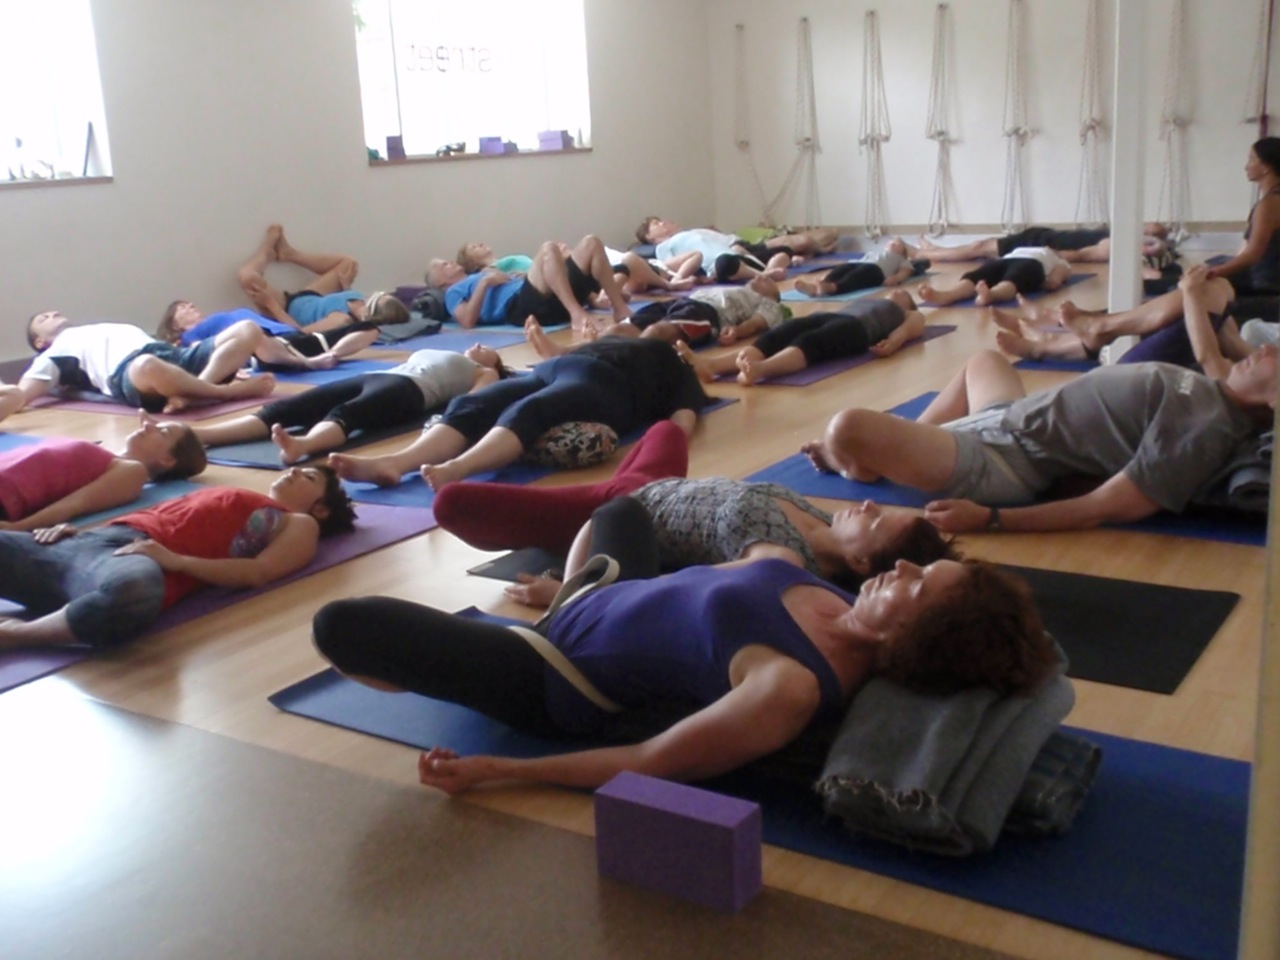 New Year's Day at Johnny's Holiday Yoga